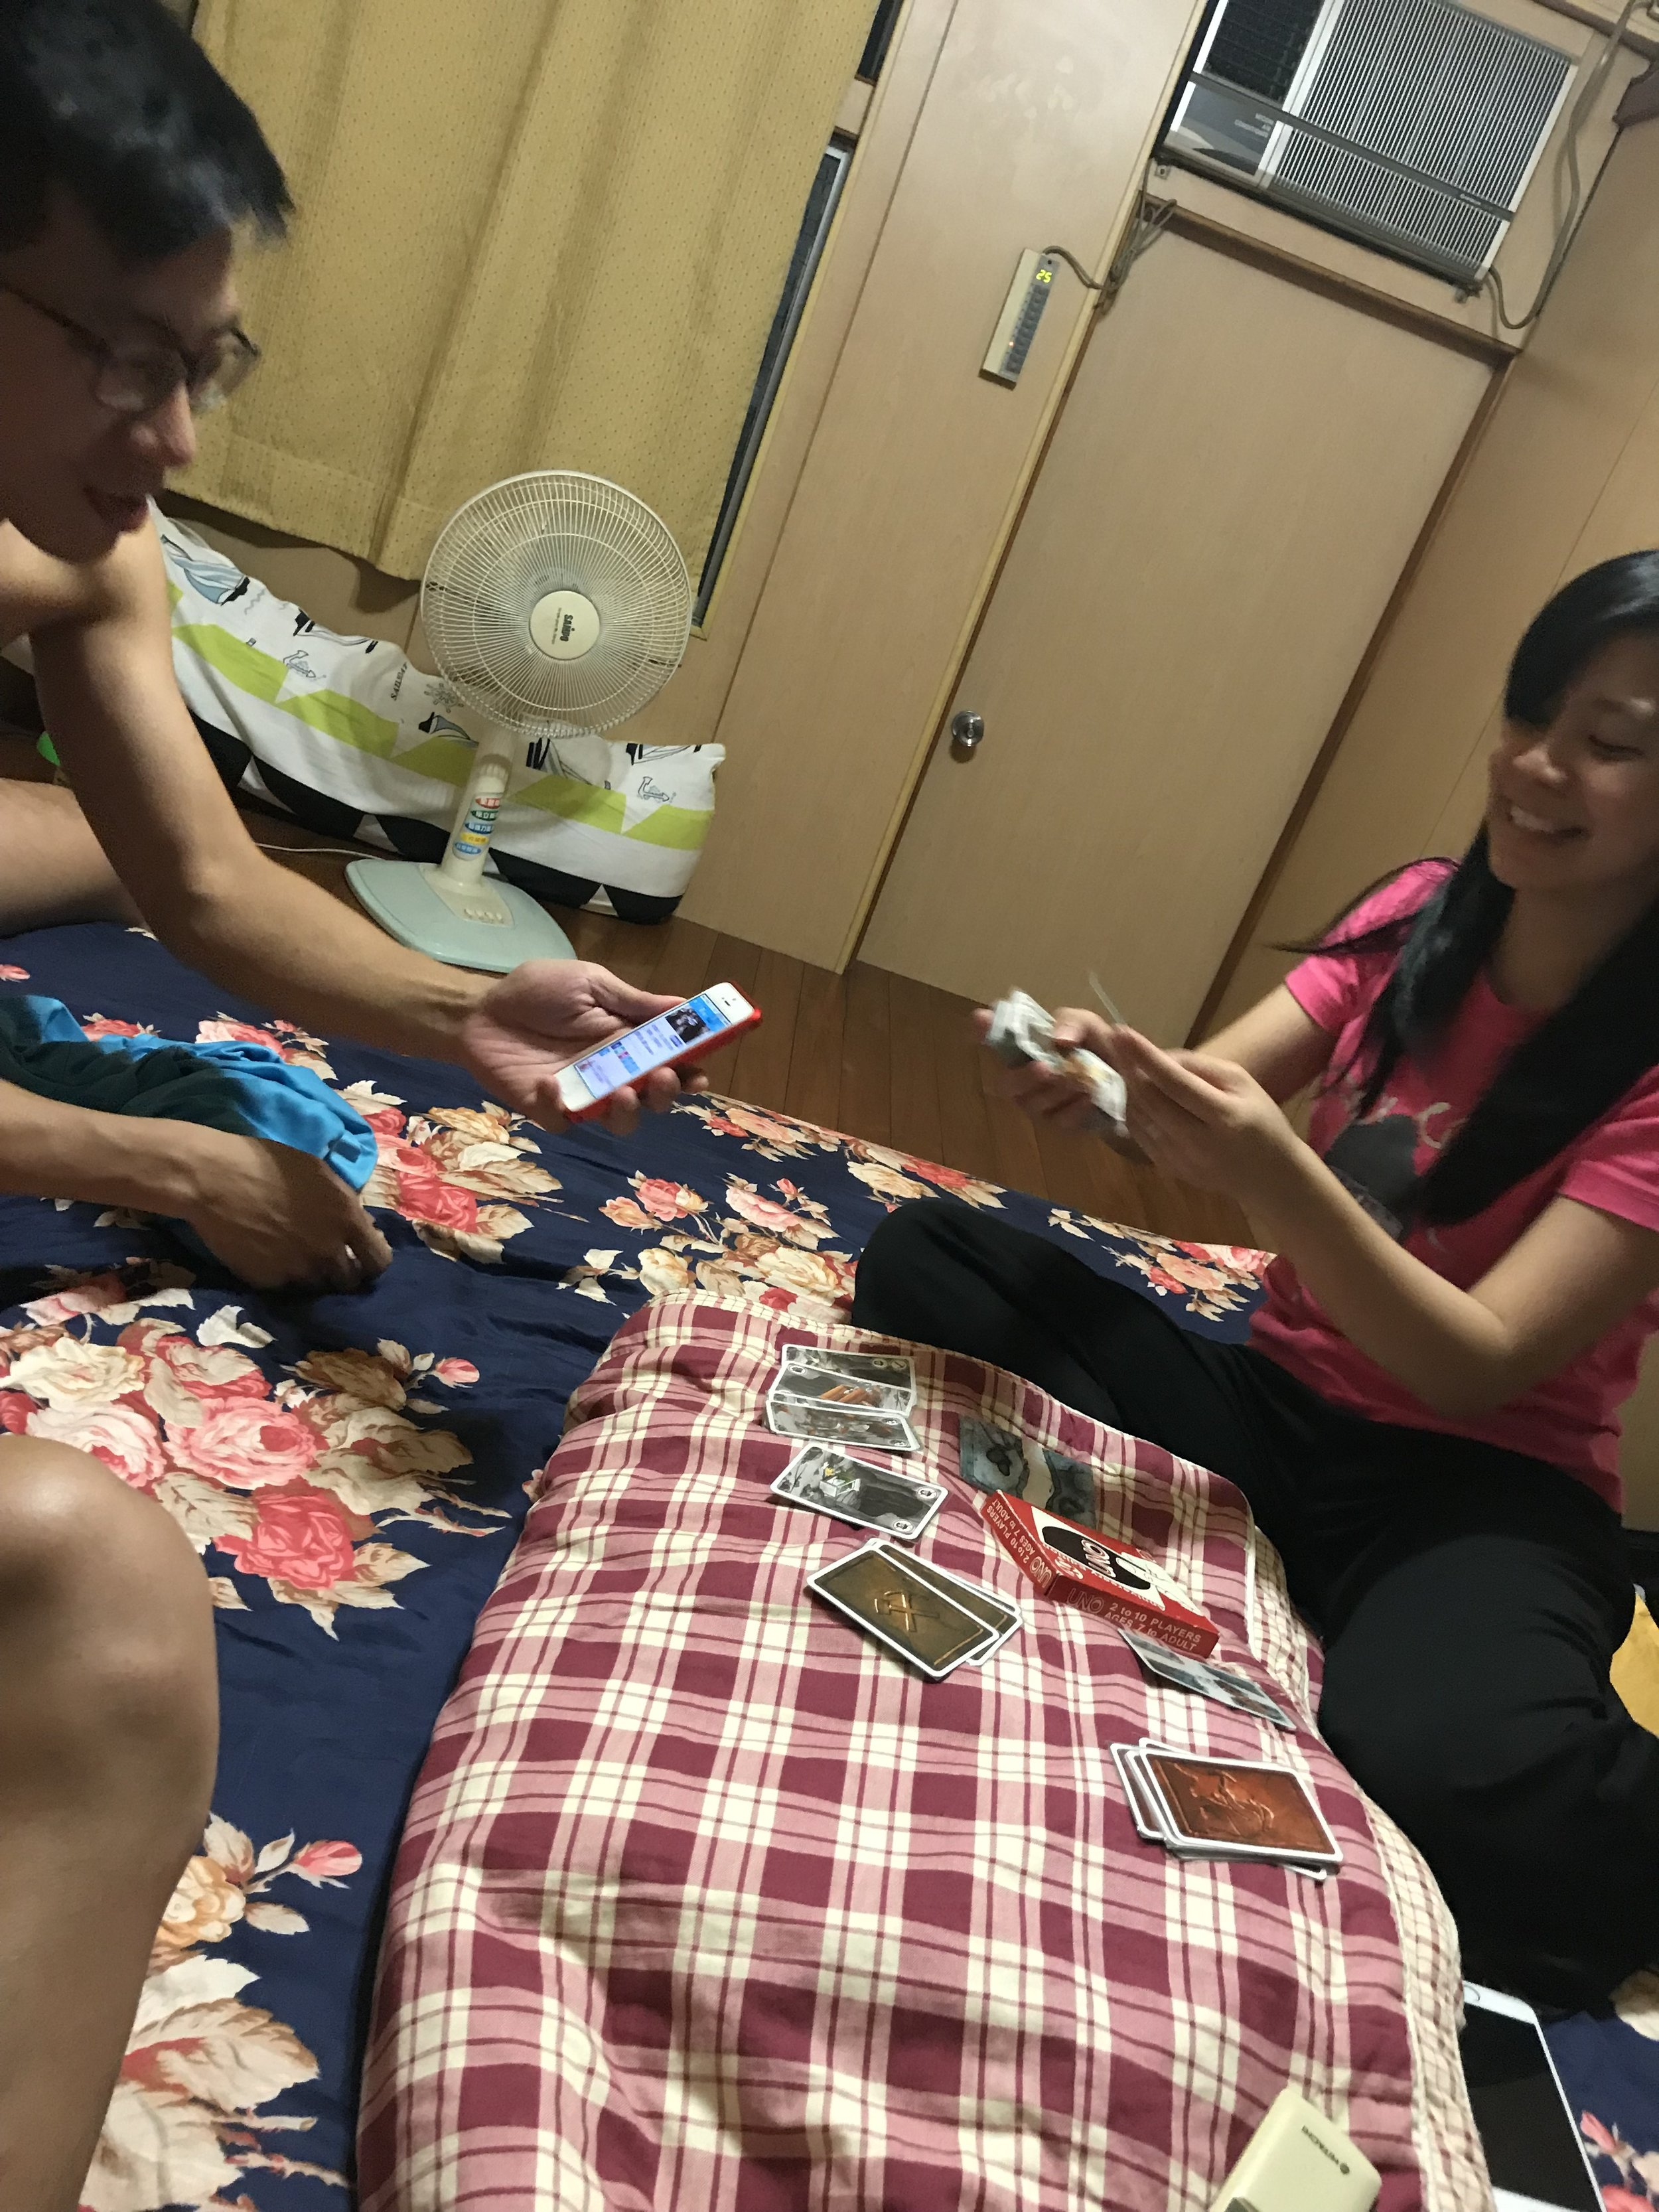 Late night cards